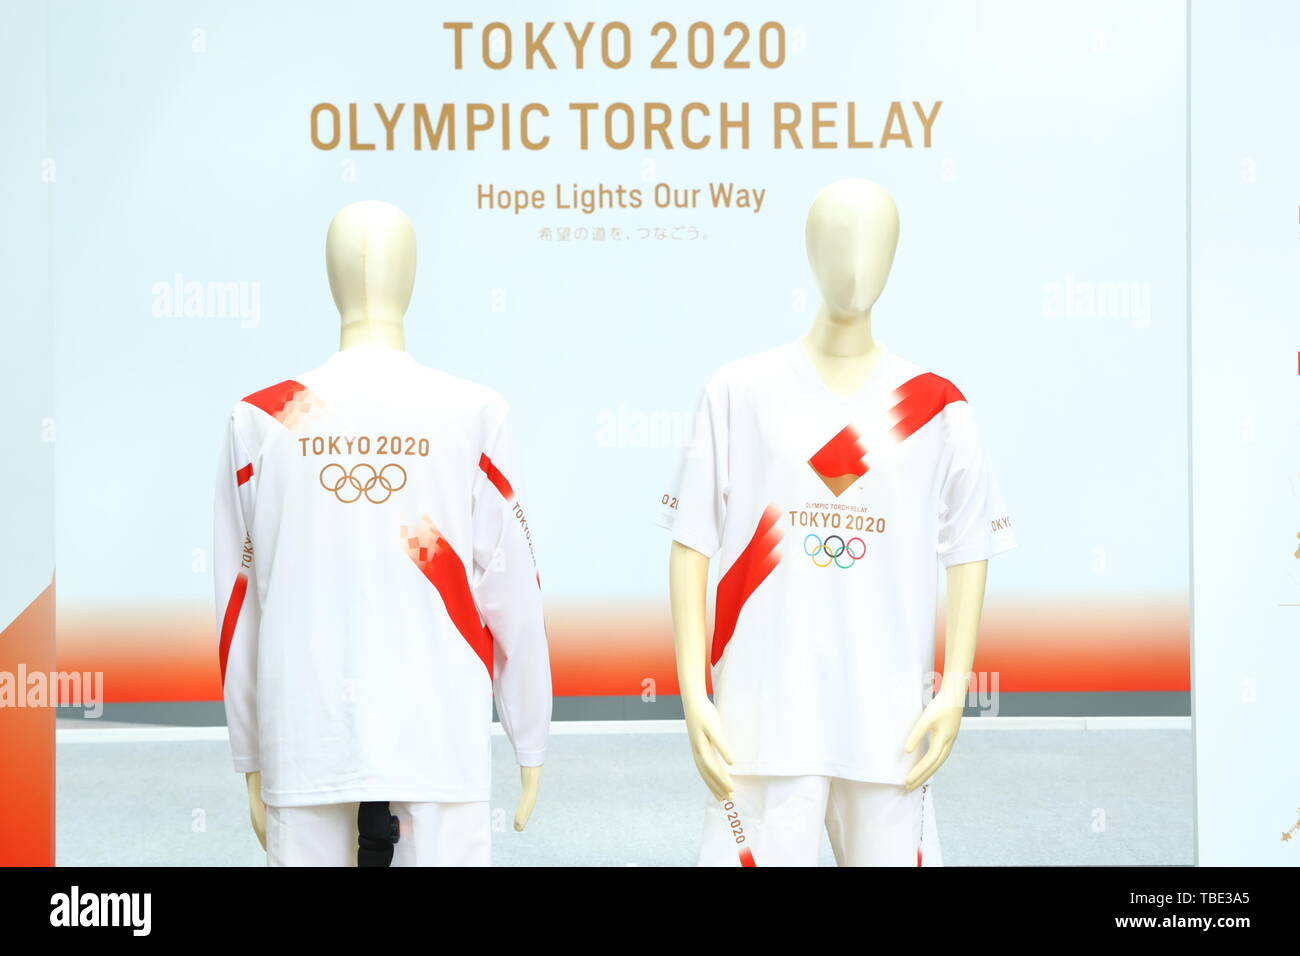 Tokyo, Japan. 1st June, 2019. General view, The Tokyo Organising Committee of the Olympic and Paralympic Games (Tokyo 2020) holds commemorative event of Torch Relay in Tokyo, Japan on June 1, 2019, 300 days before of the Japanese leg of the Tokyo 2020 Olympic Torch Relay starts. The Organising Committee unveiled an official uniform, course outline and applicant guidelines for Torch Relay Runners. Credit: Naoki Nishimura/AFLO SPORT/Alamy Live News - Stock Image